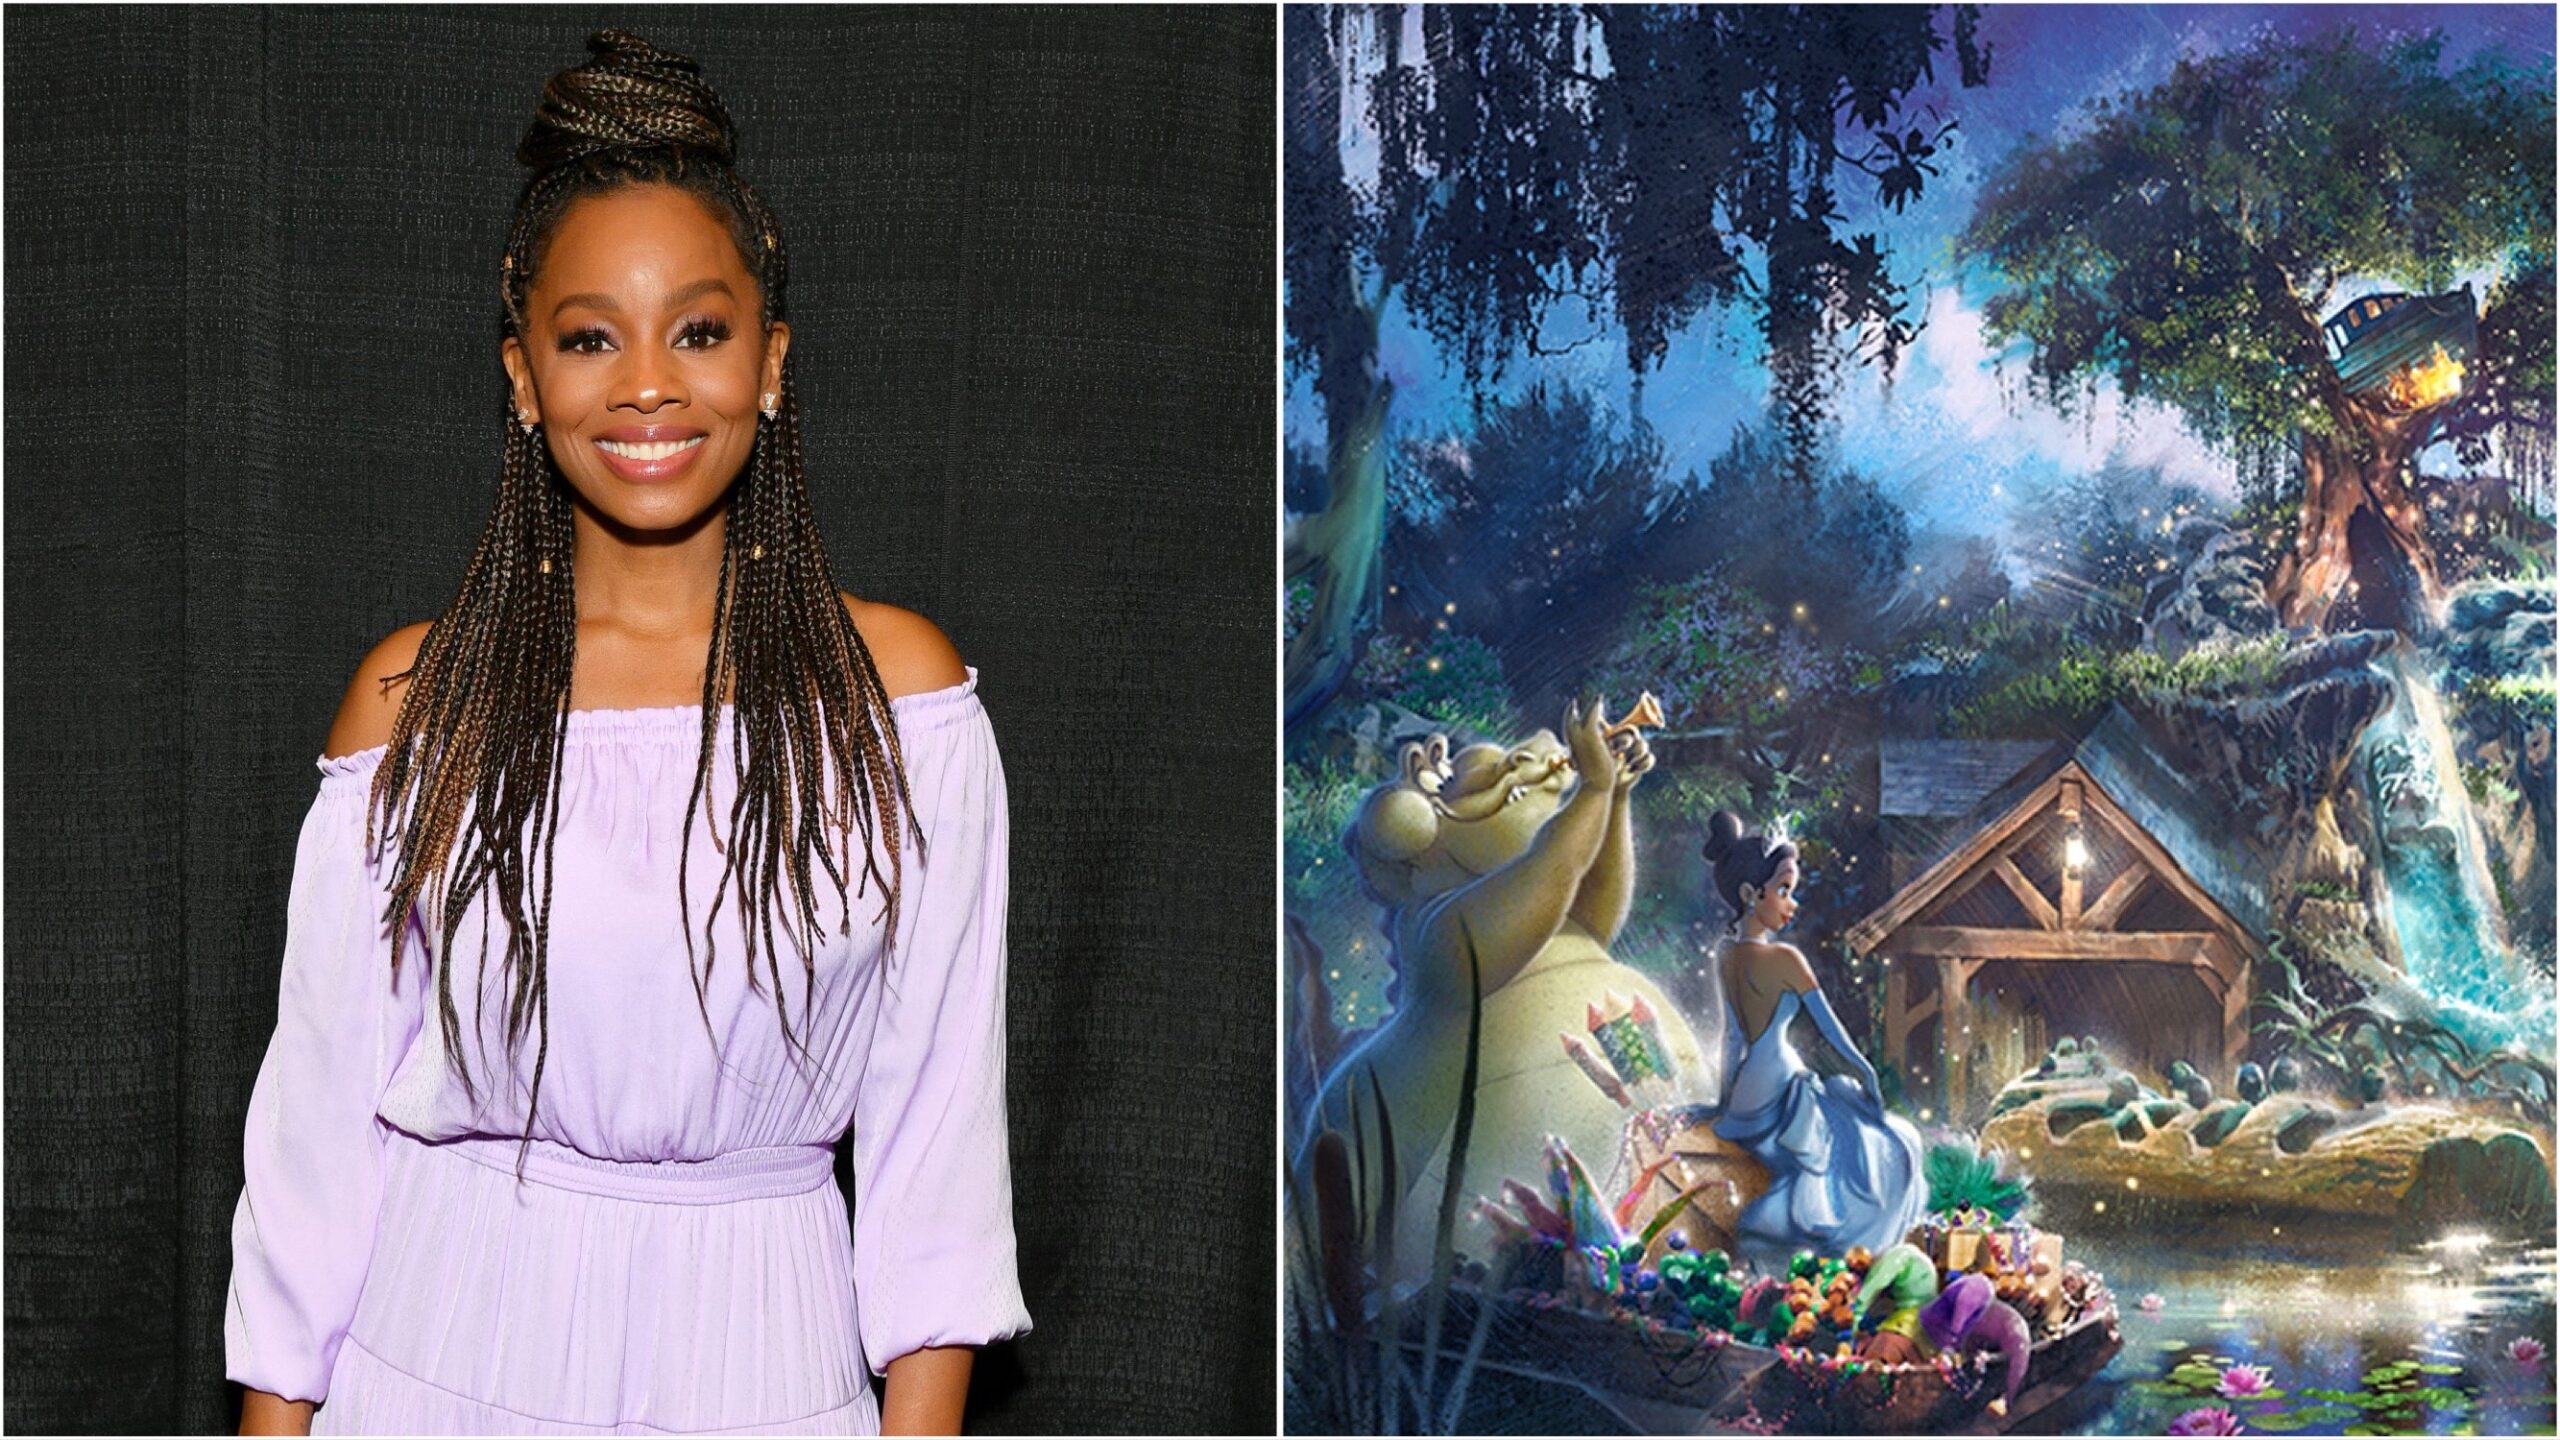 More Details On Splash Mountain Makeover And Tiana's Place Restaurant From Anika Noni Rose